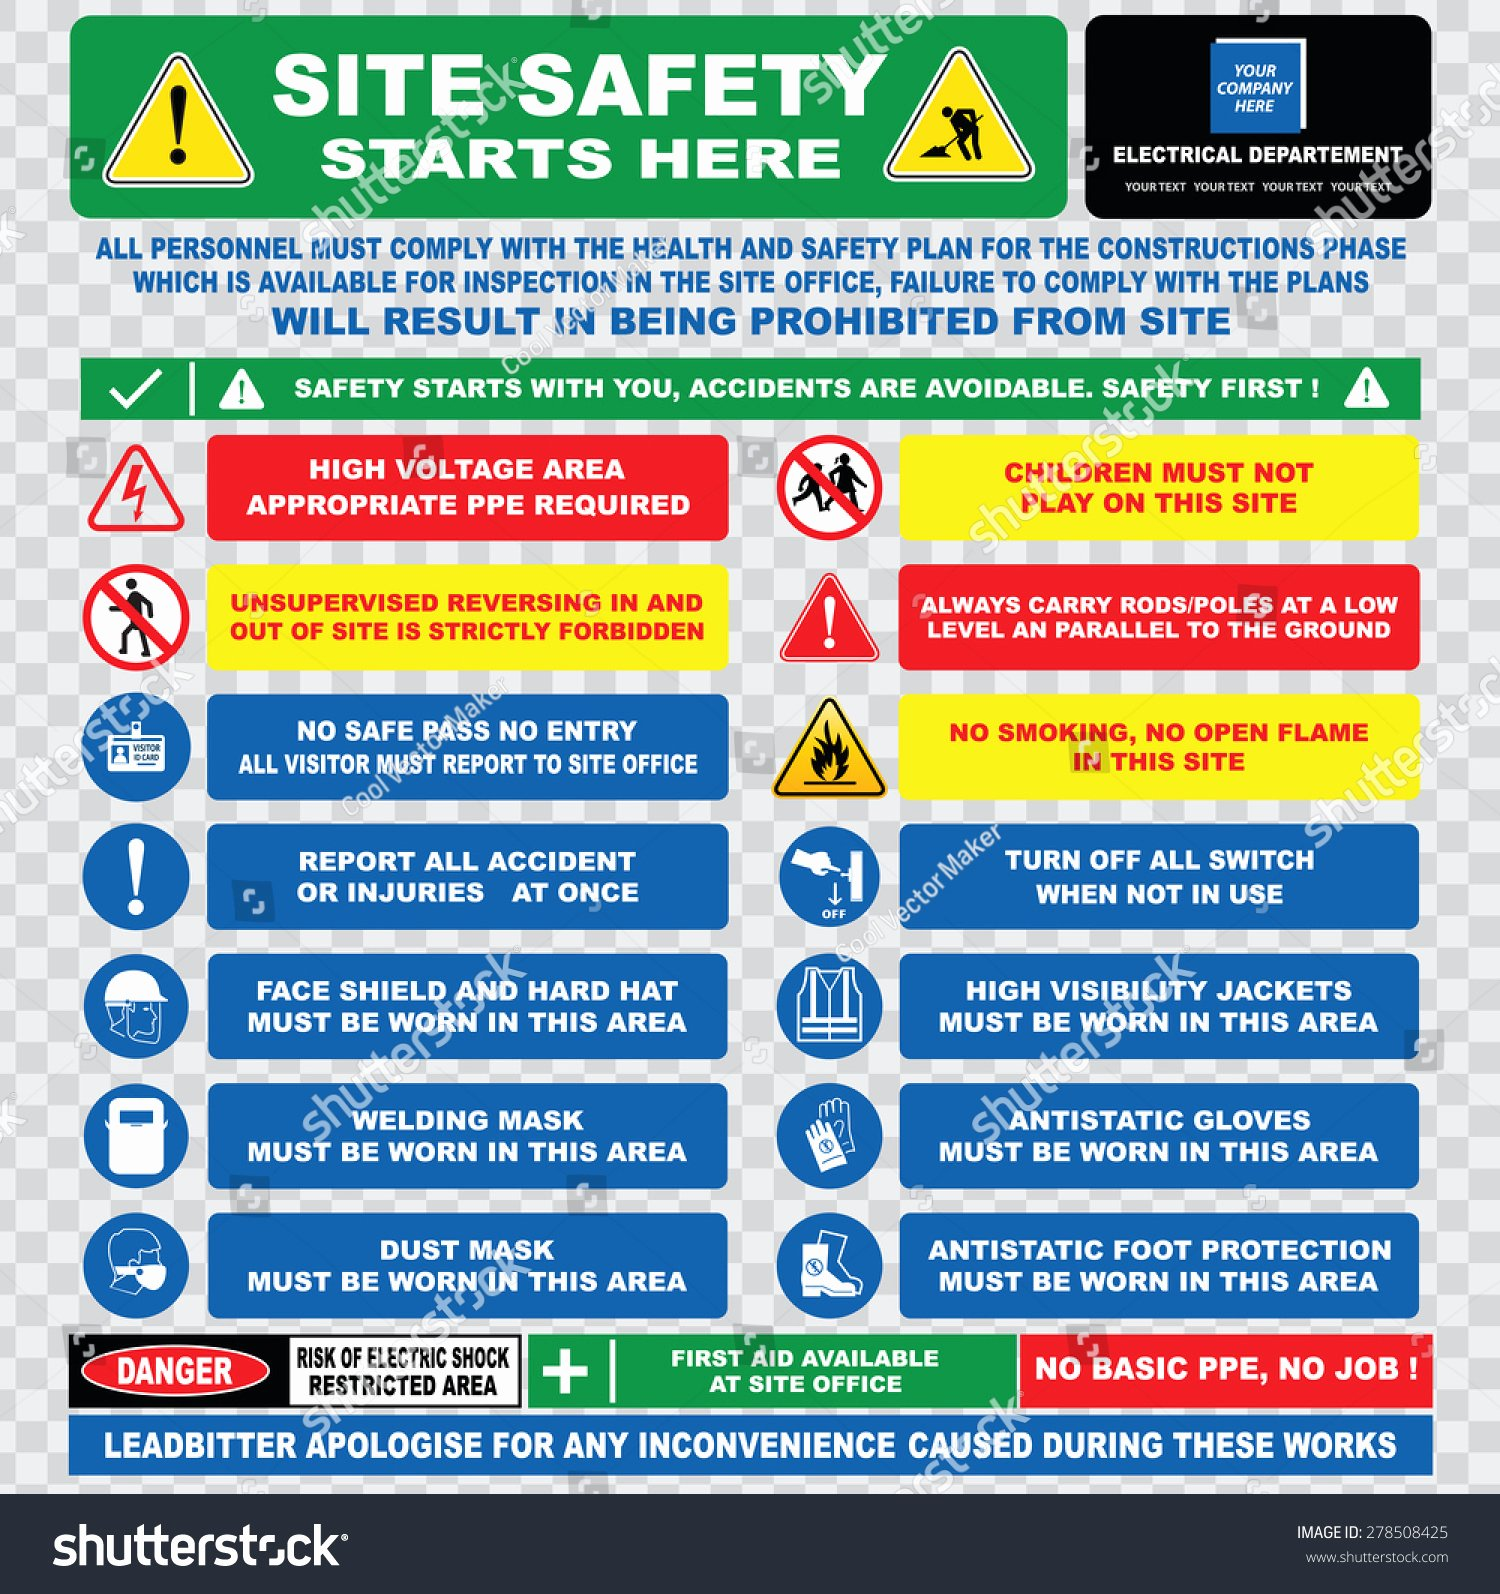 Site Safety Plan Template Lovely Site Safety Starts Here Site Safety Stock Vector